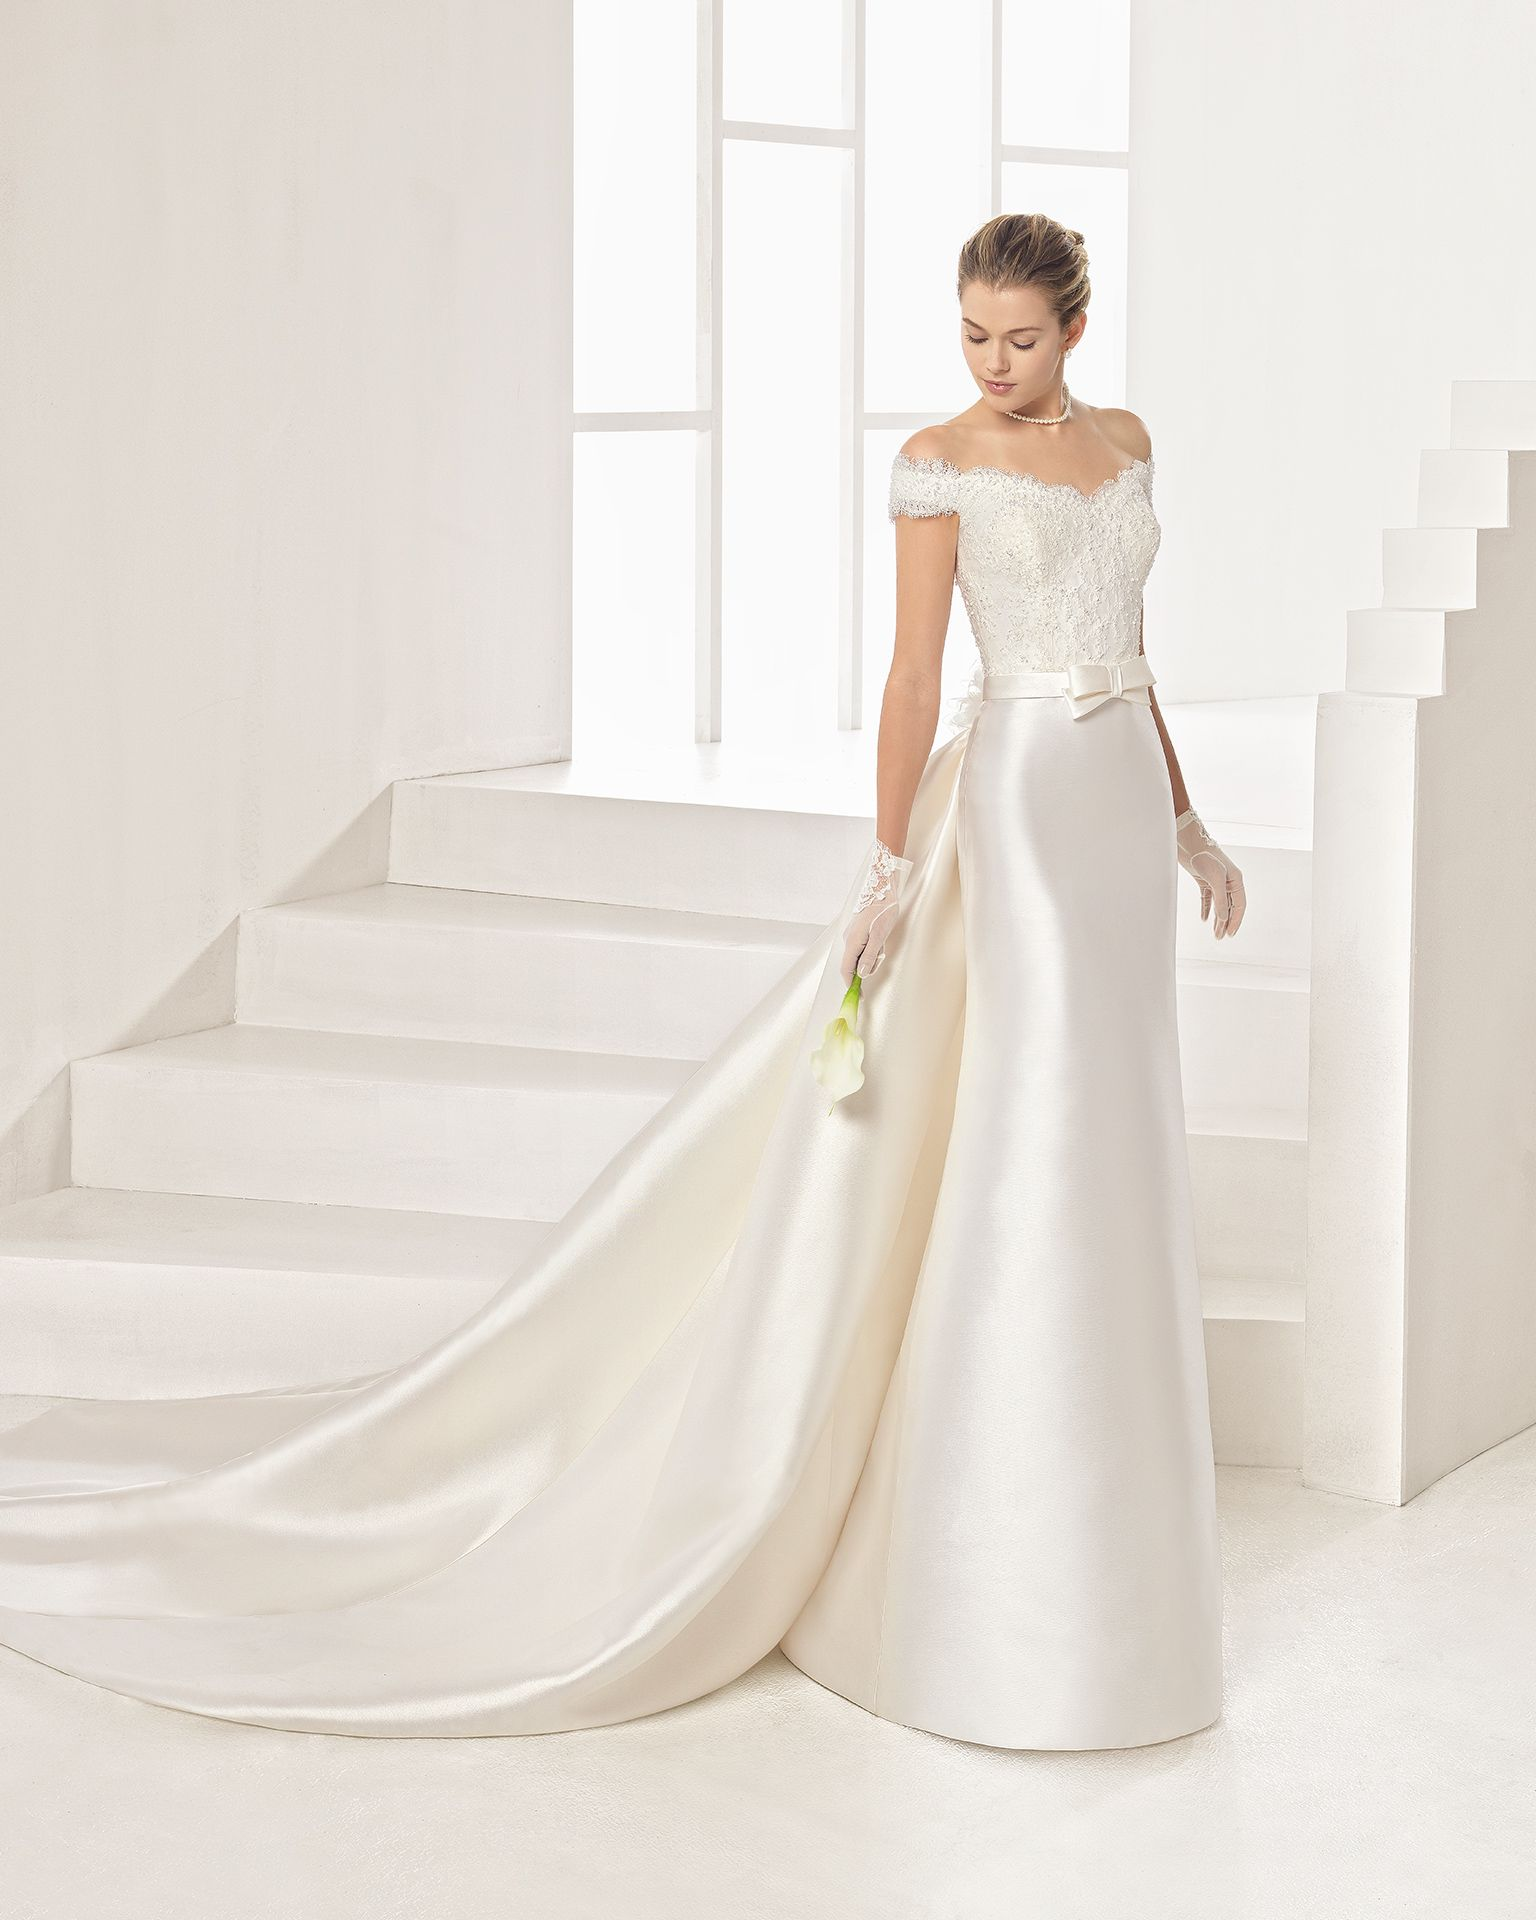 Tailored mikado wedding gown with beaded lace bodice. Rosa Clará Two 2017 Collection.